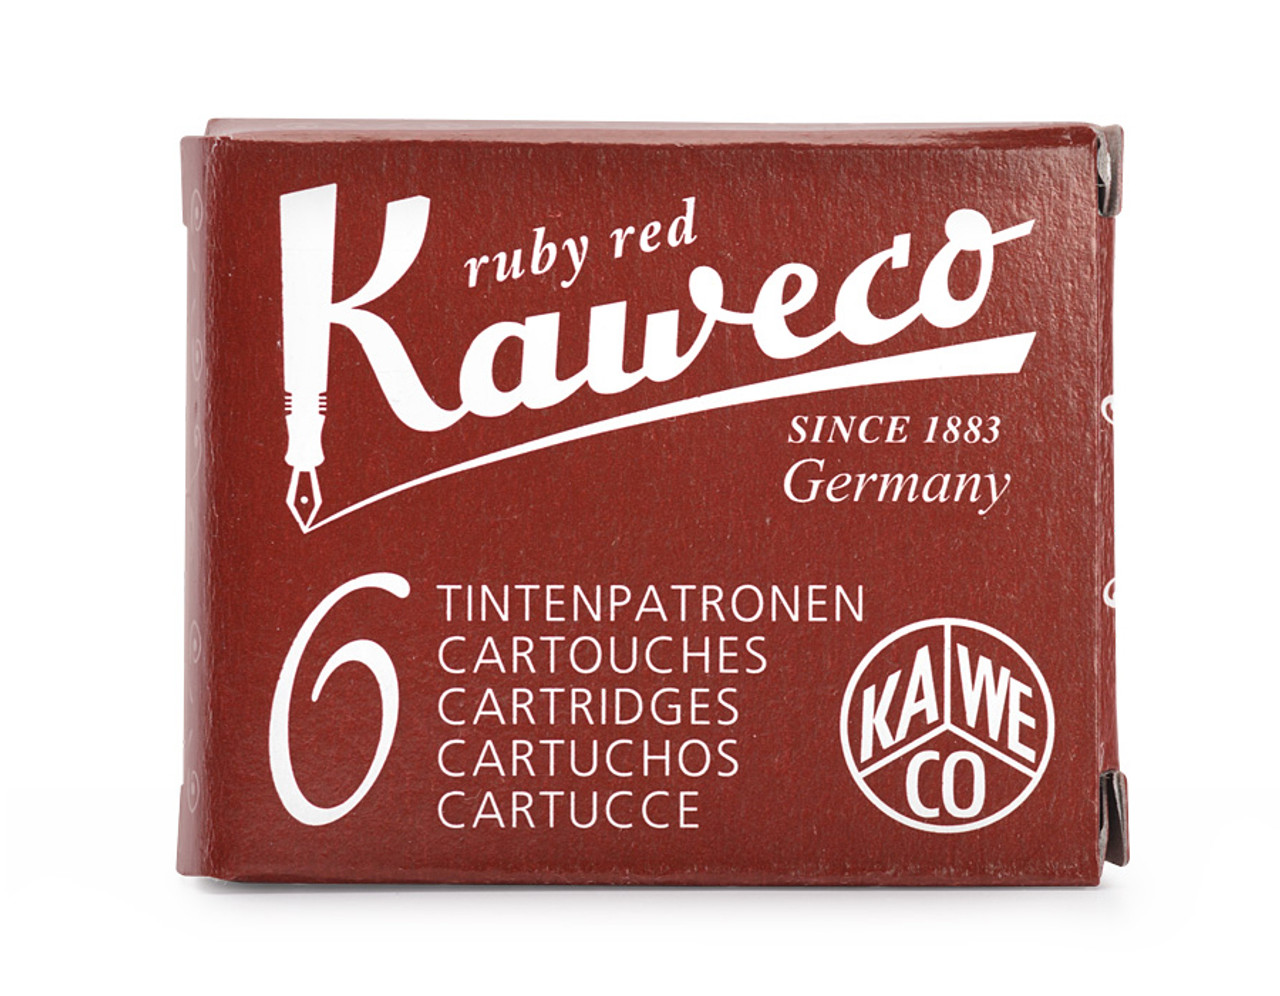 Kaweco ink cartridges, ruby red